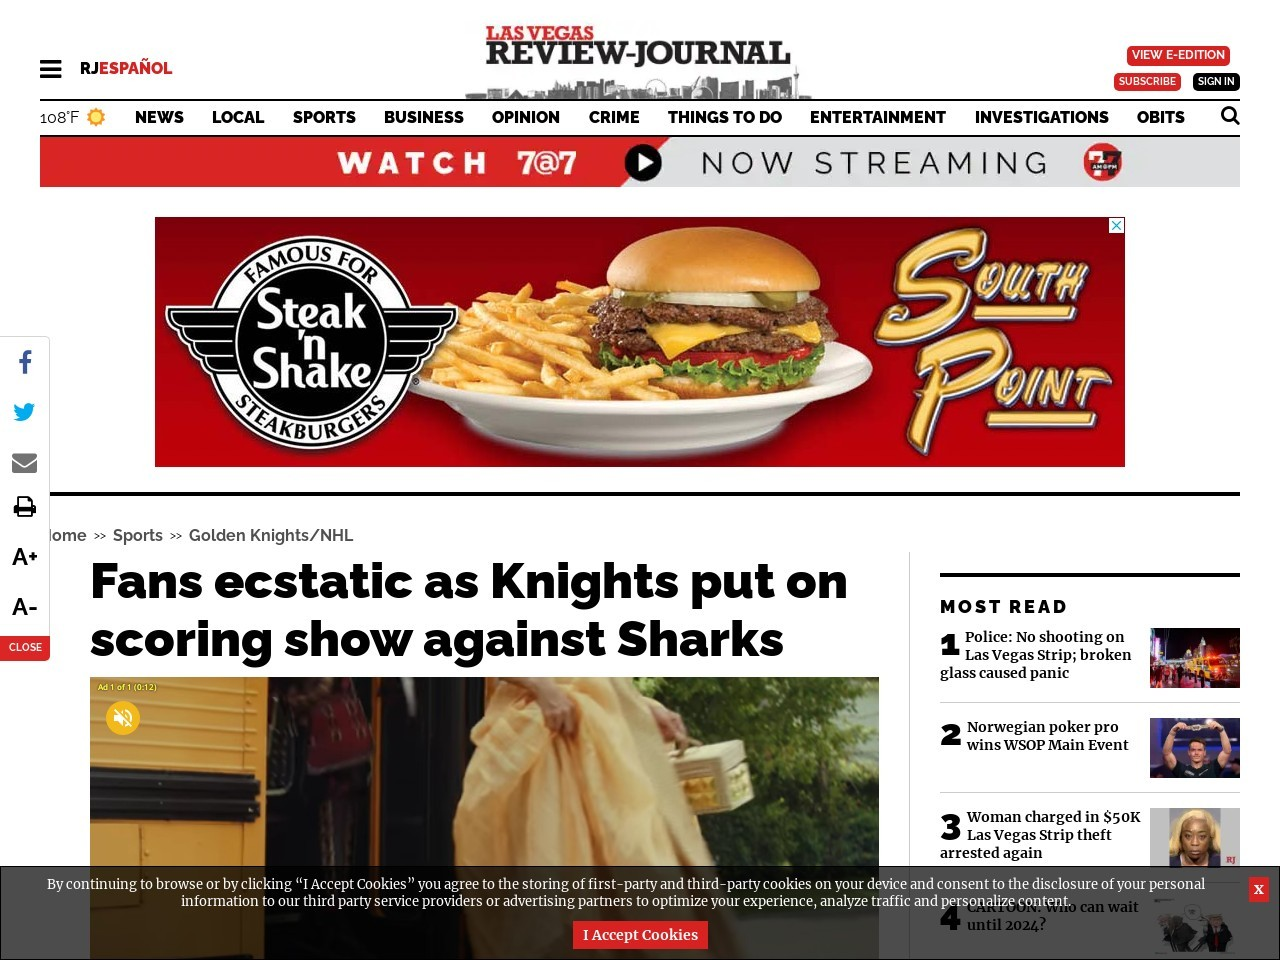 Fans ecstatic as Knights put on scoring show against Sharks